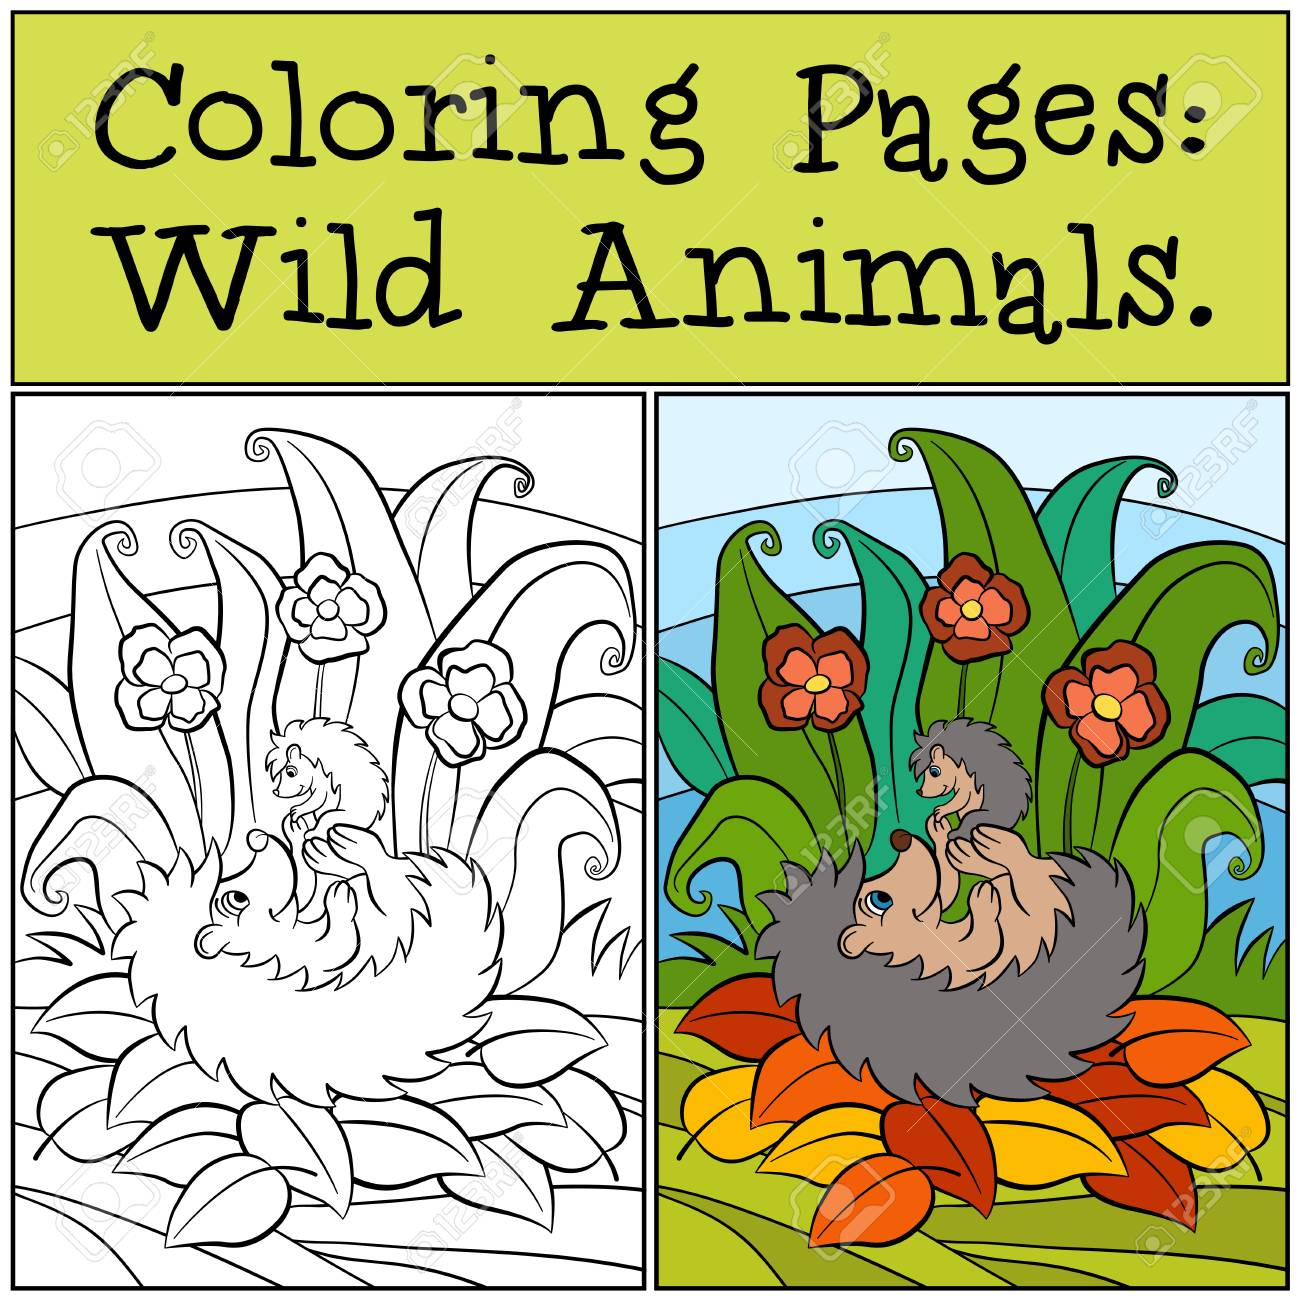 Coloring Pages: Wild Animals. Mother Hedgehog Holds Little Cute ...